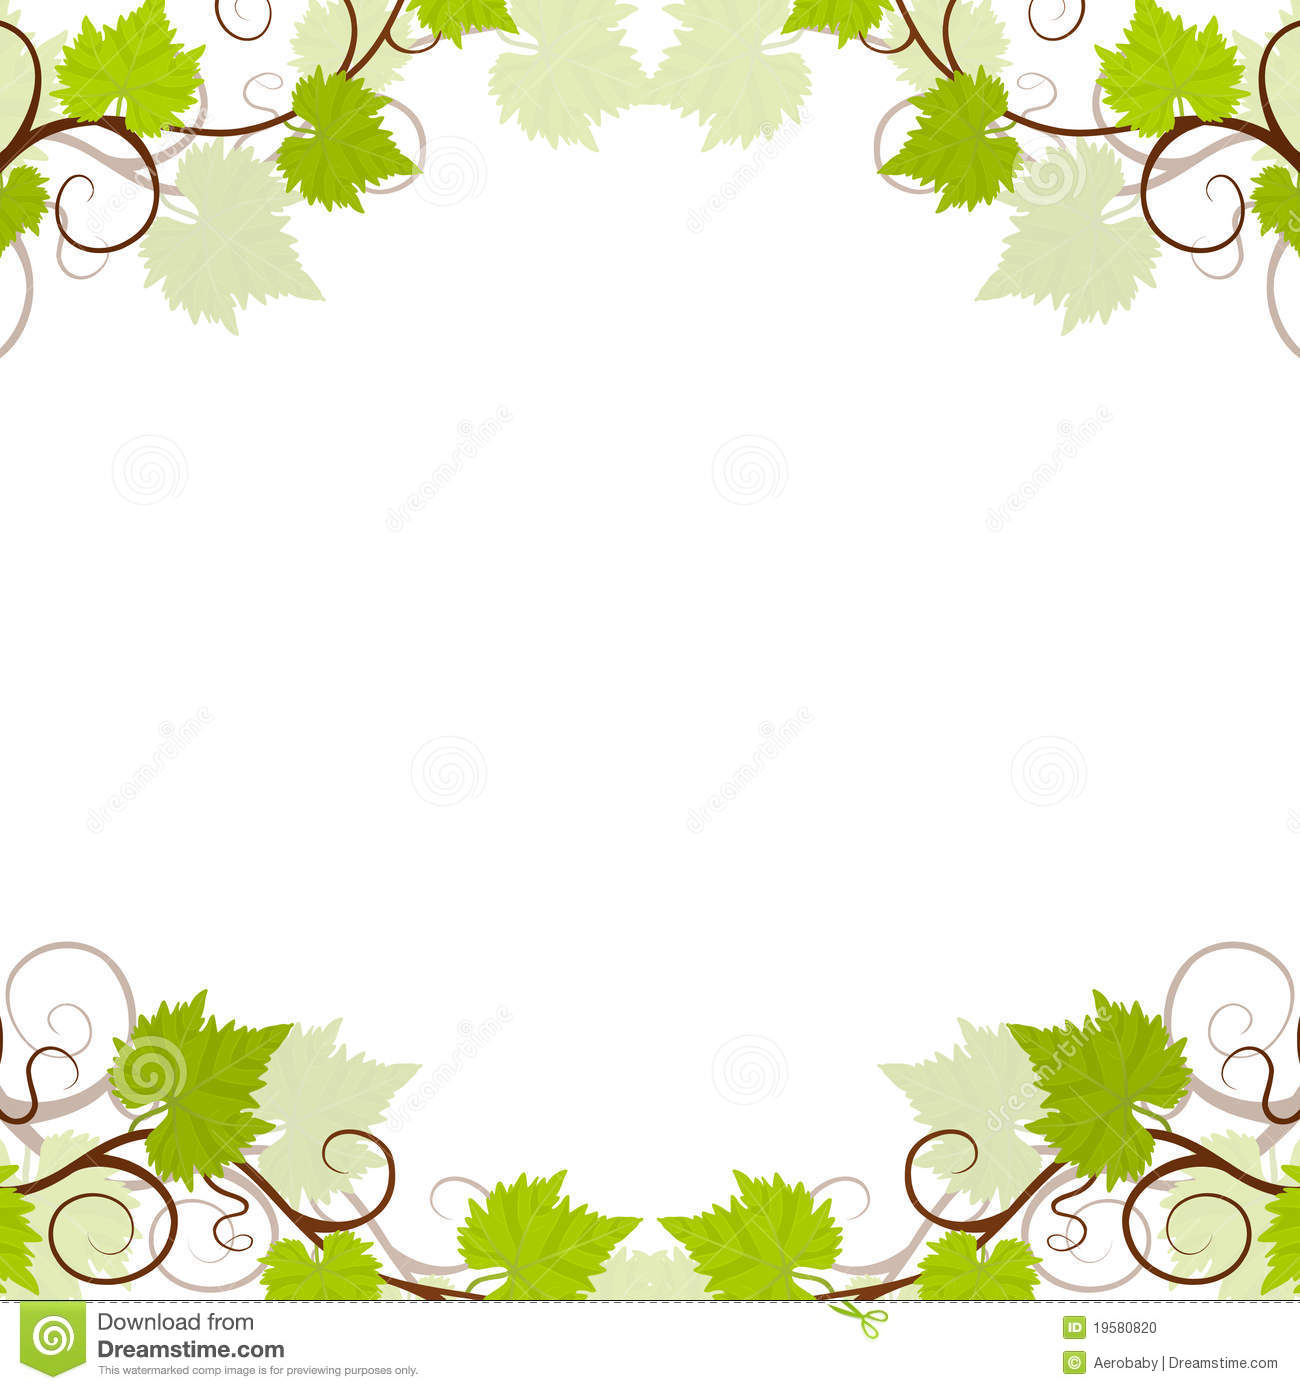 Grape Vines Background Frame. Stock Photo - Image: 19580820